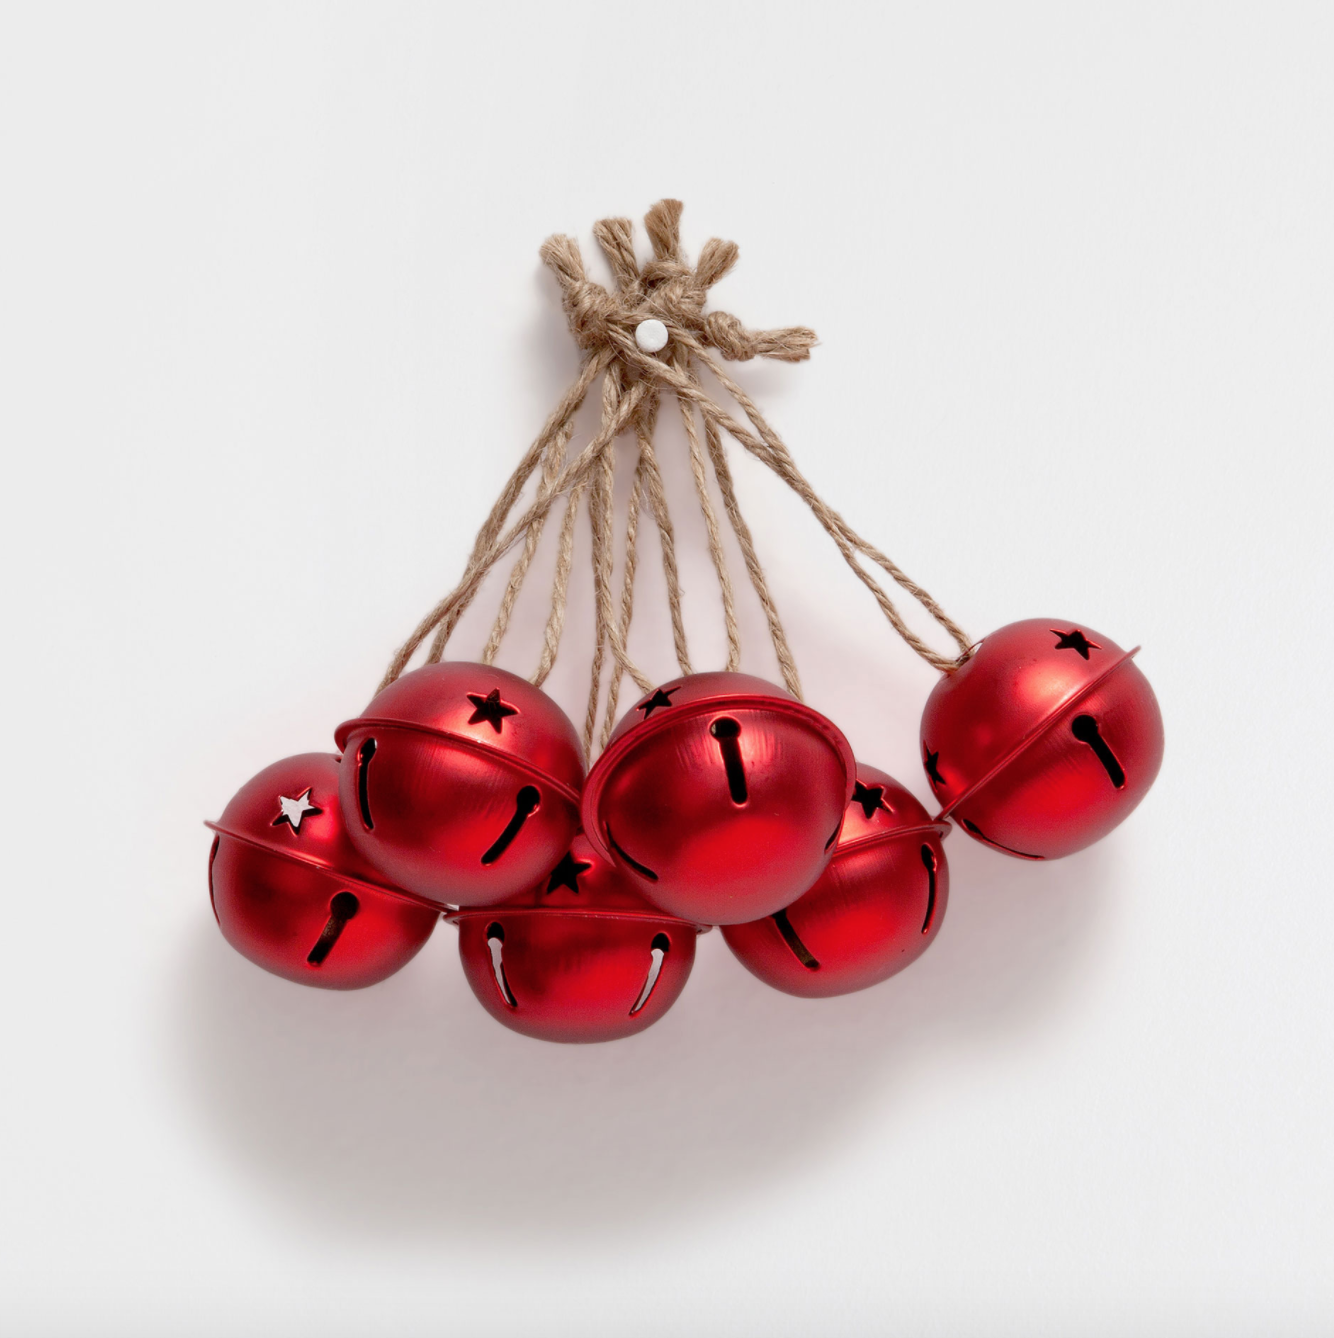 7 unexpected websites to find festive holiday decorations